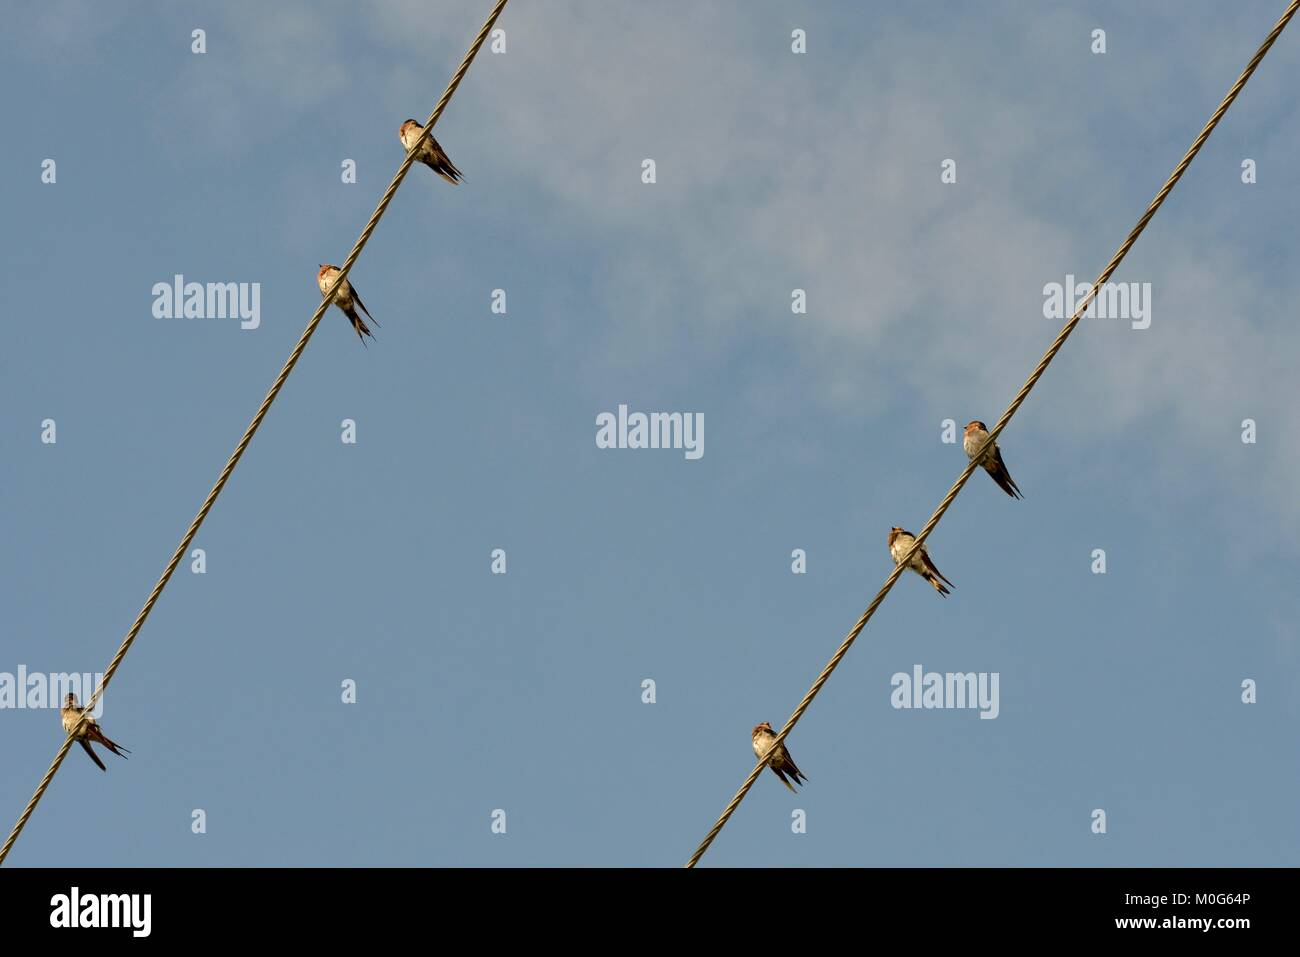 Welcome swallows (Hirundo neoxena) perched on power lines in the early morning, Townsville, Queensland, Australia - Stock Image